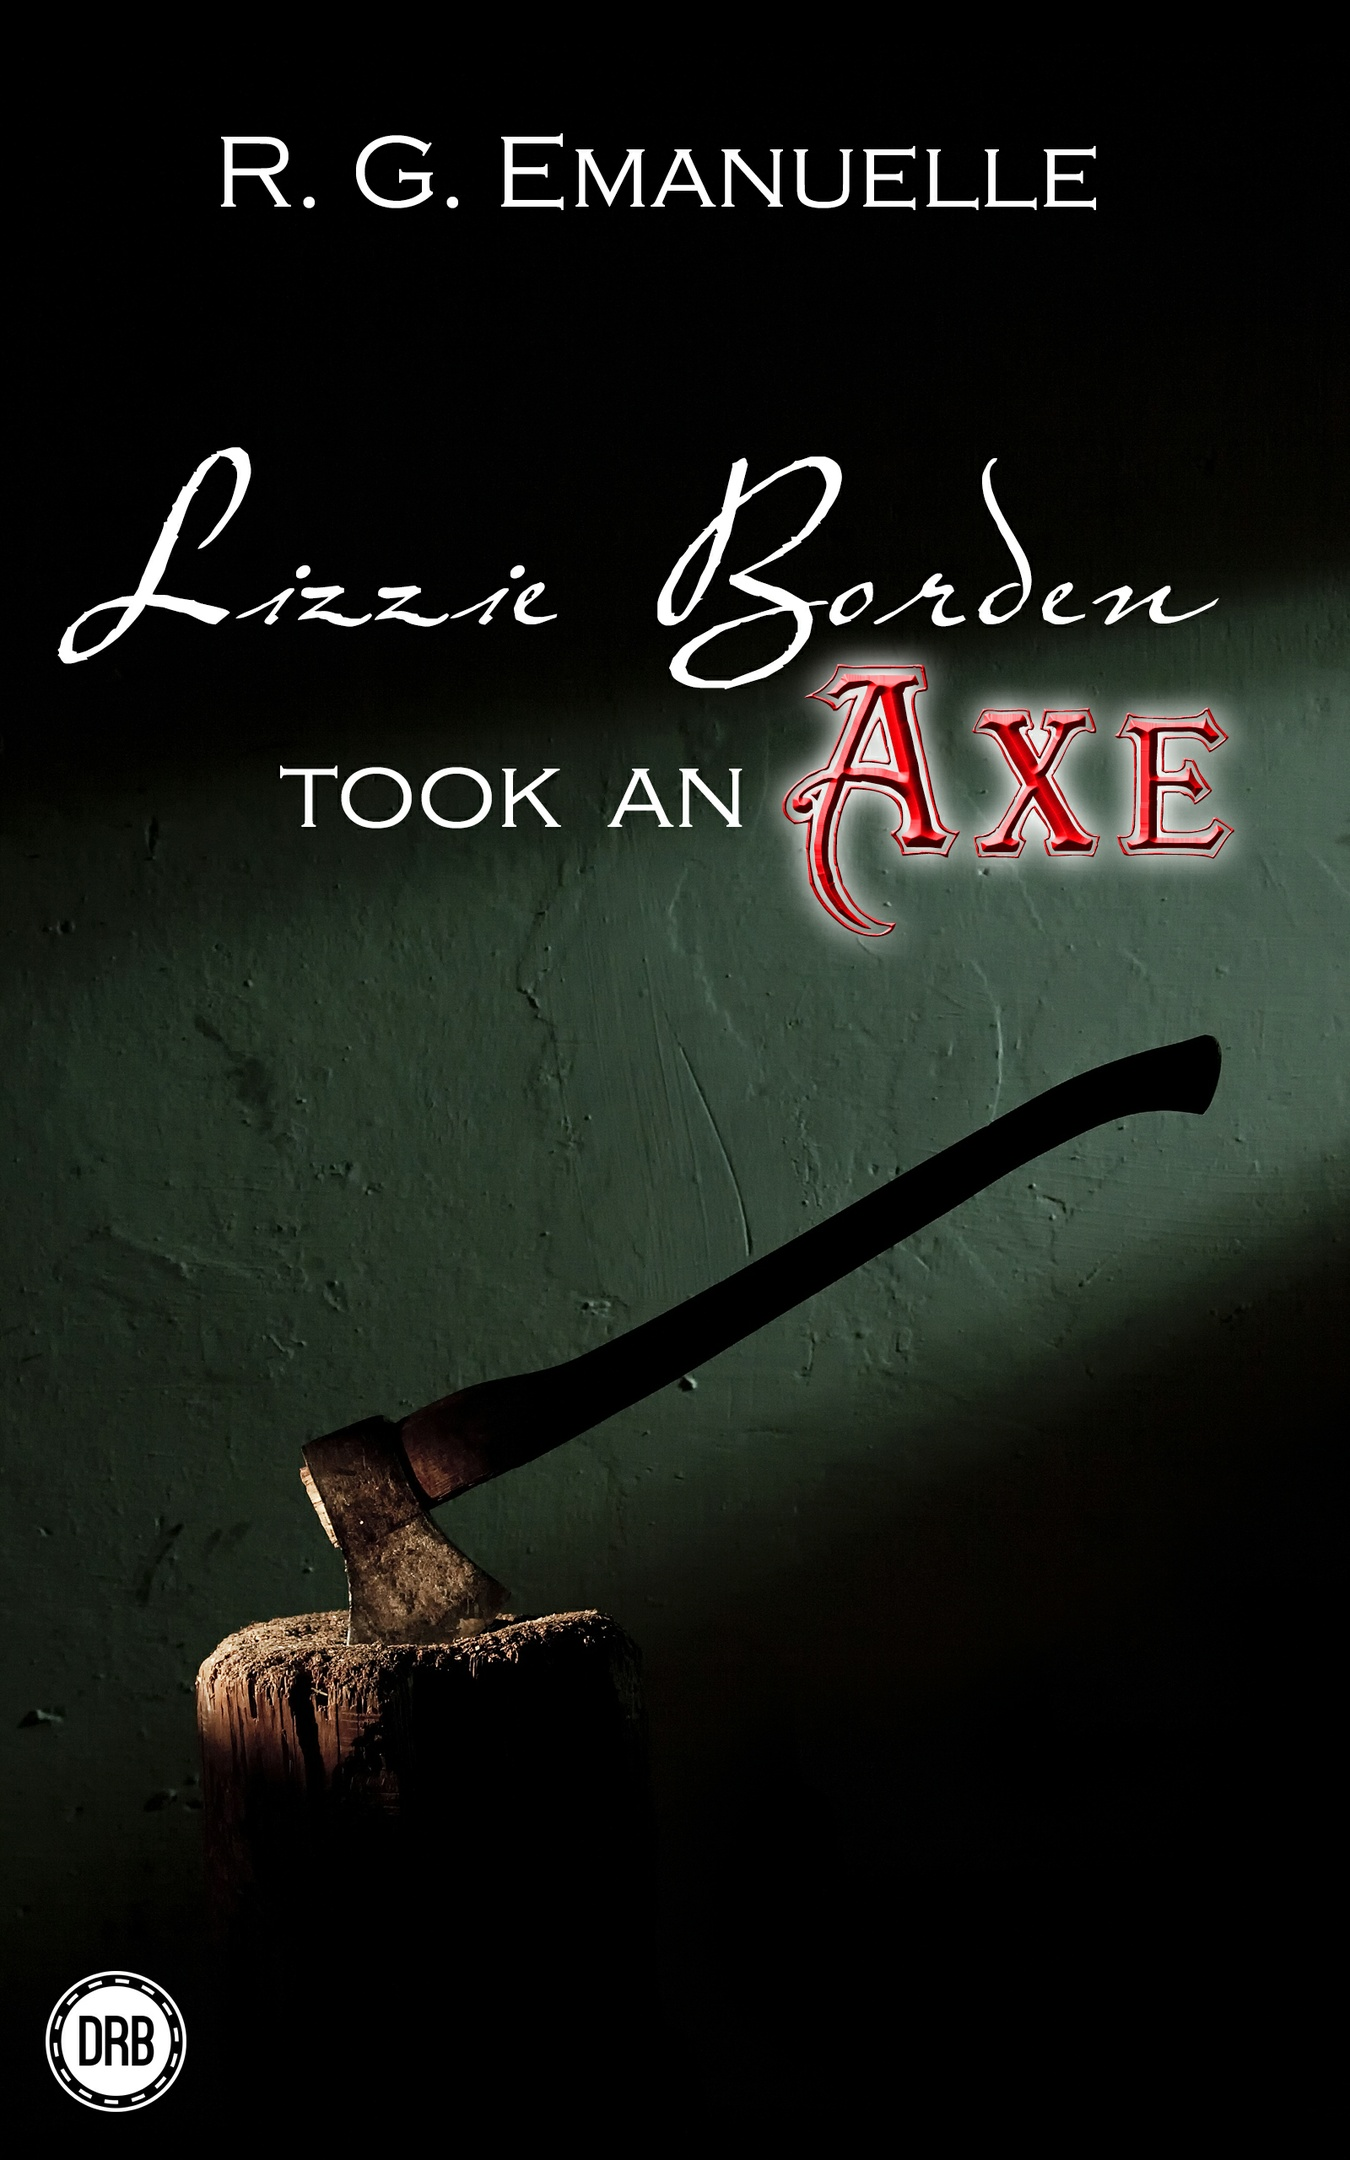 Lizzie Borden Took an Axe by R.G. Emanuelle - mobi (Kindle)